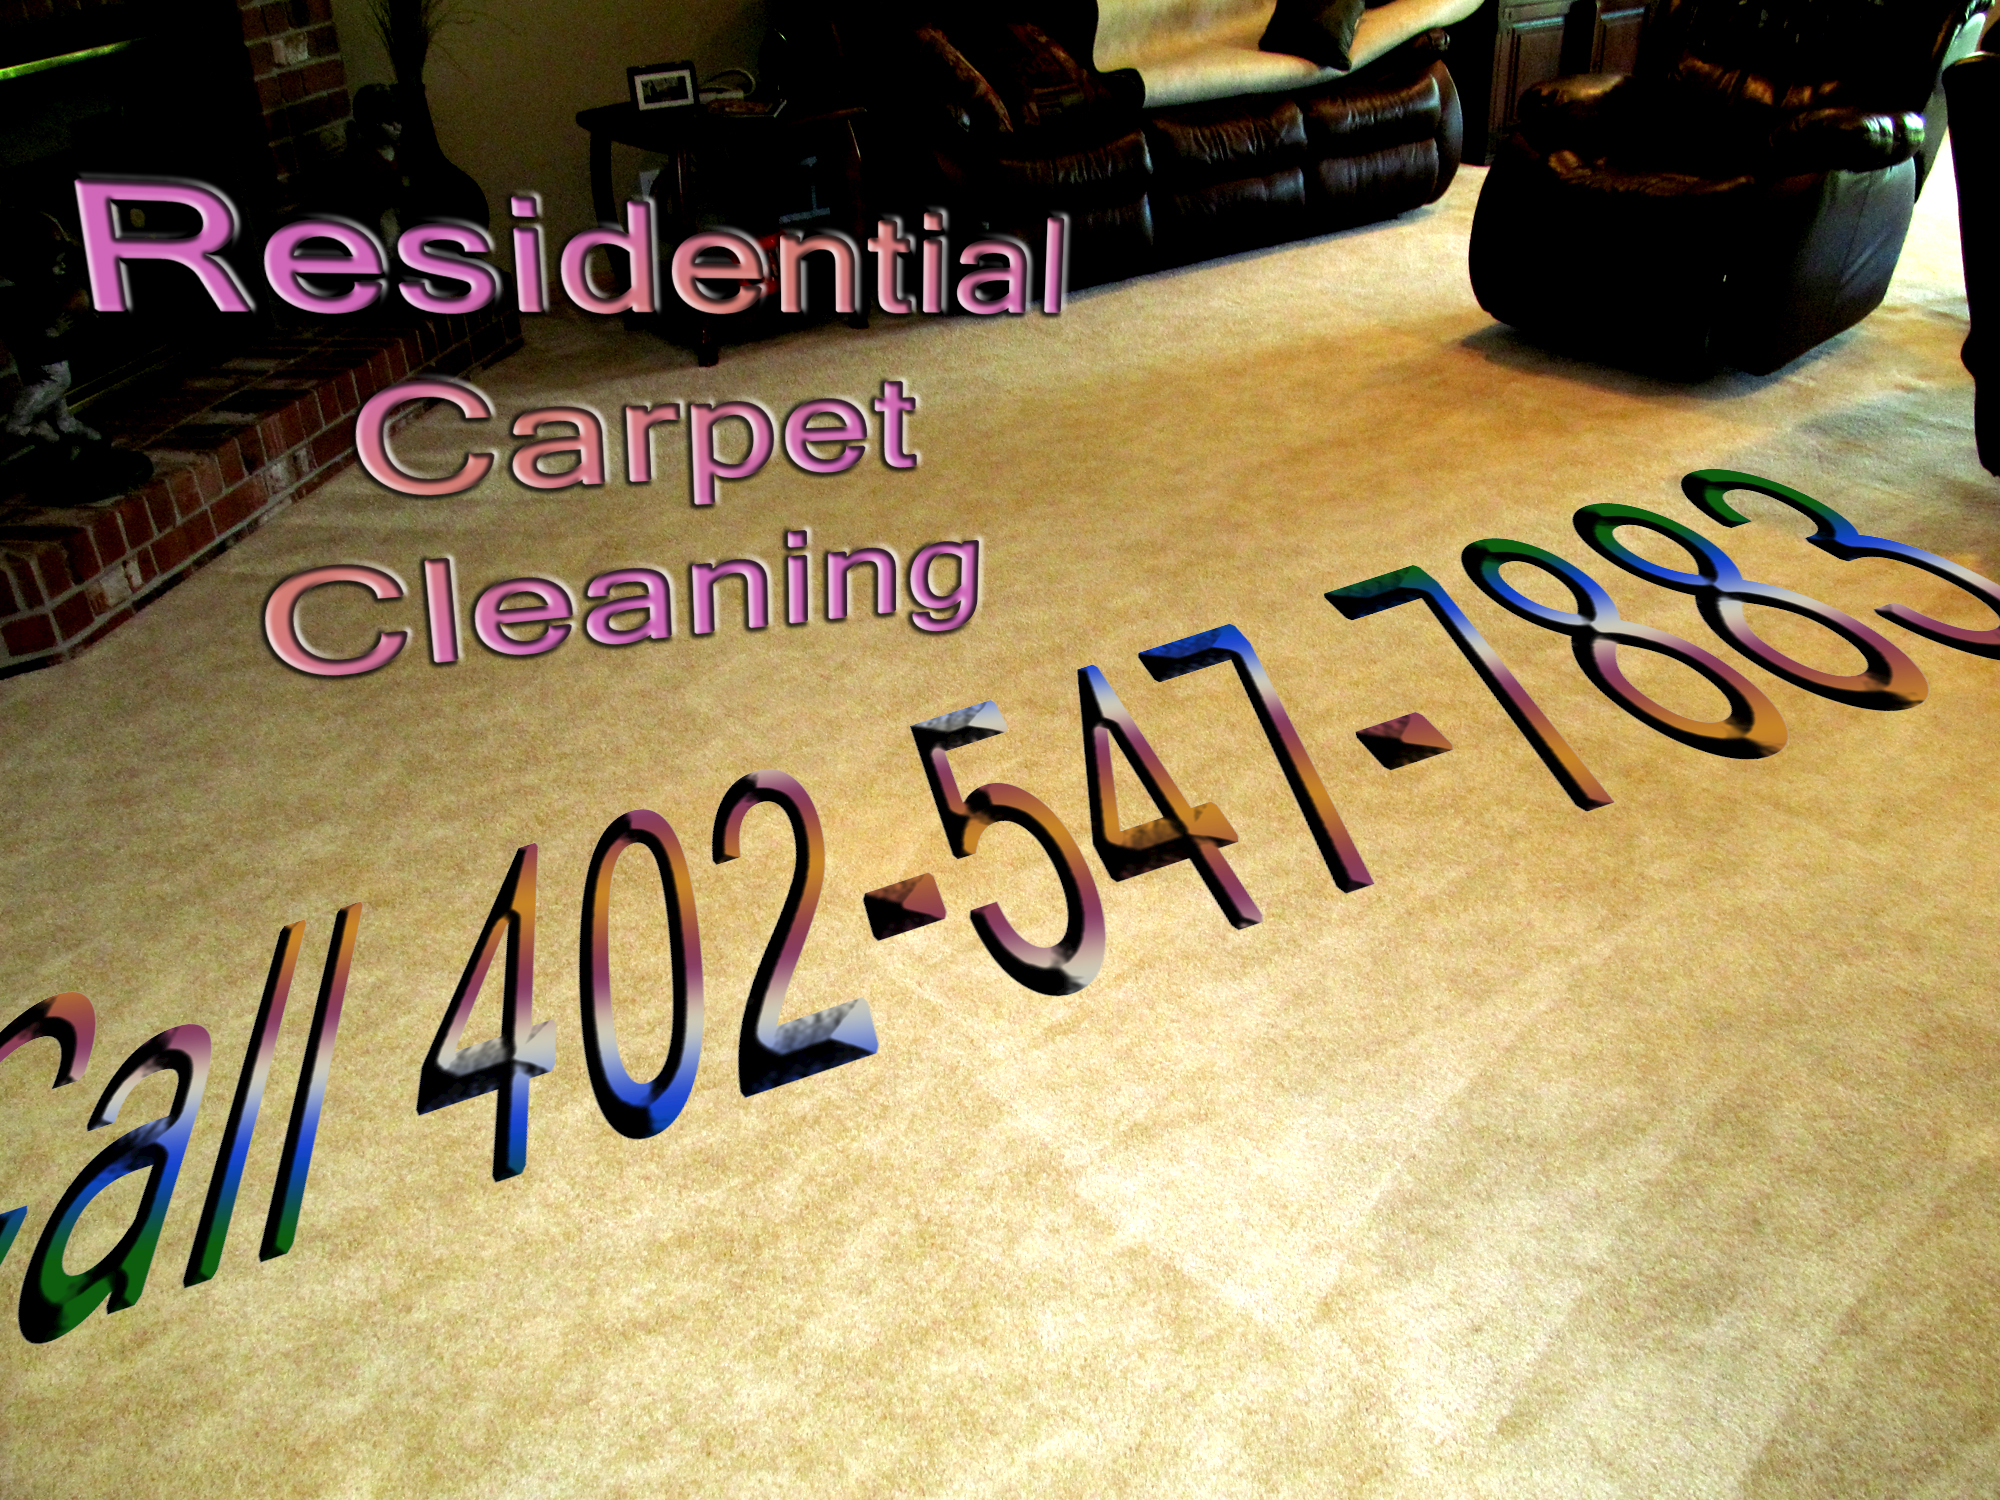 carpet cleaning service increases online visibility video call 402 547 7883 for quality and affordable carpet cleaningomaha janitorial carpet cleaning services 402 547 7883